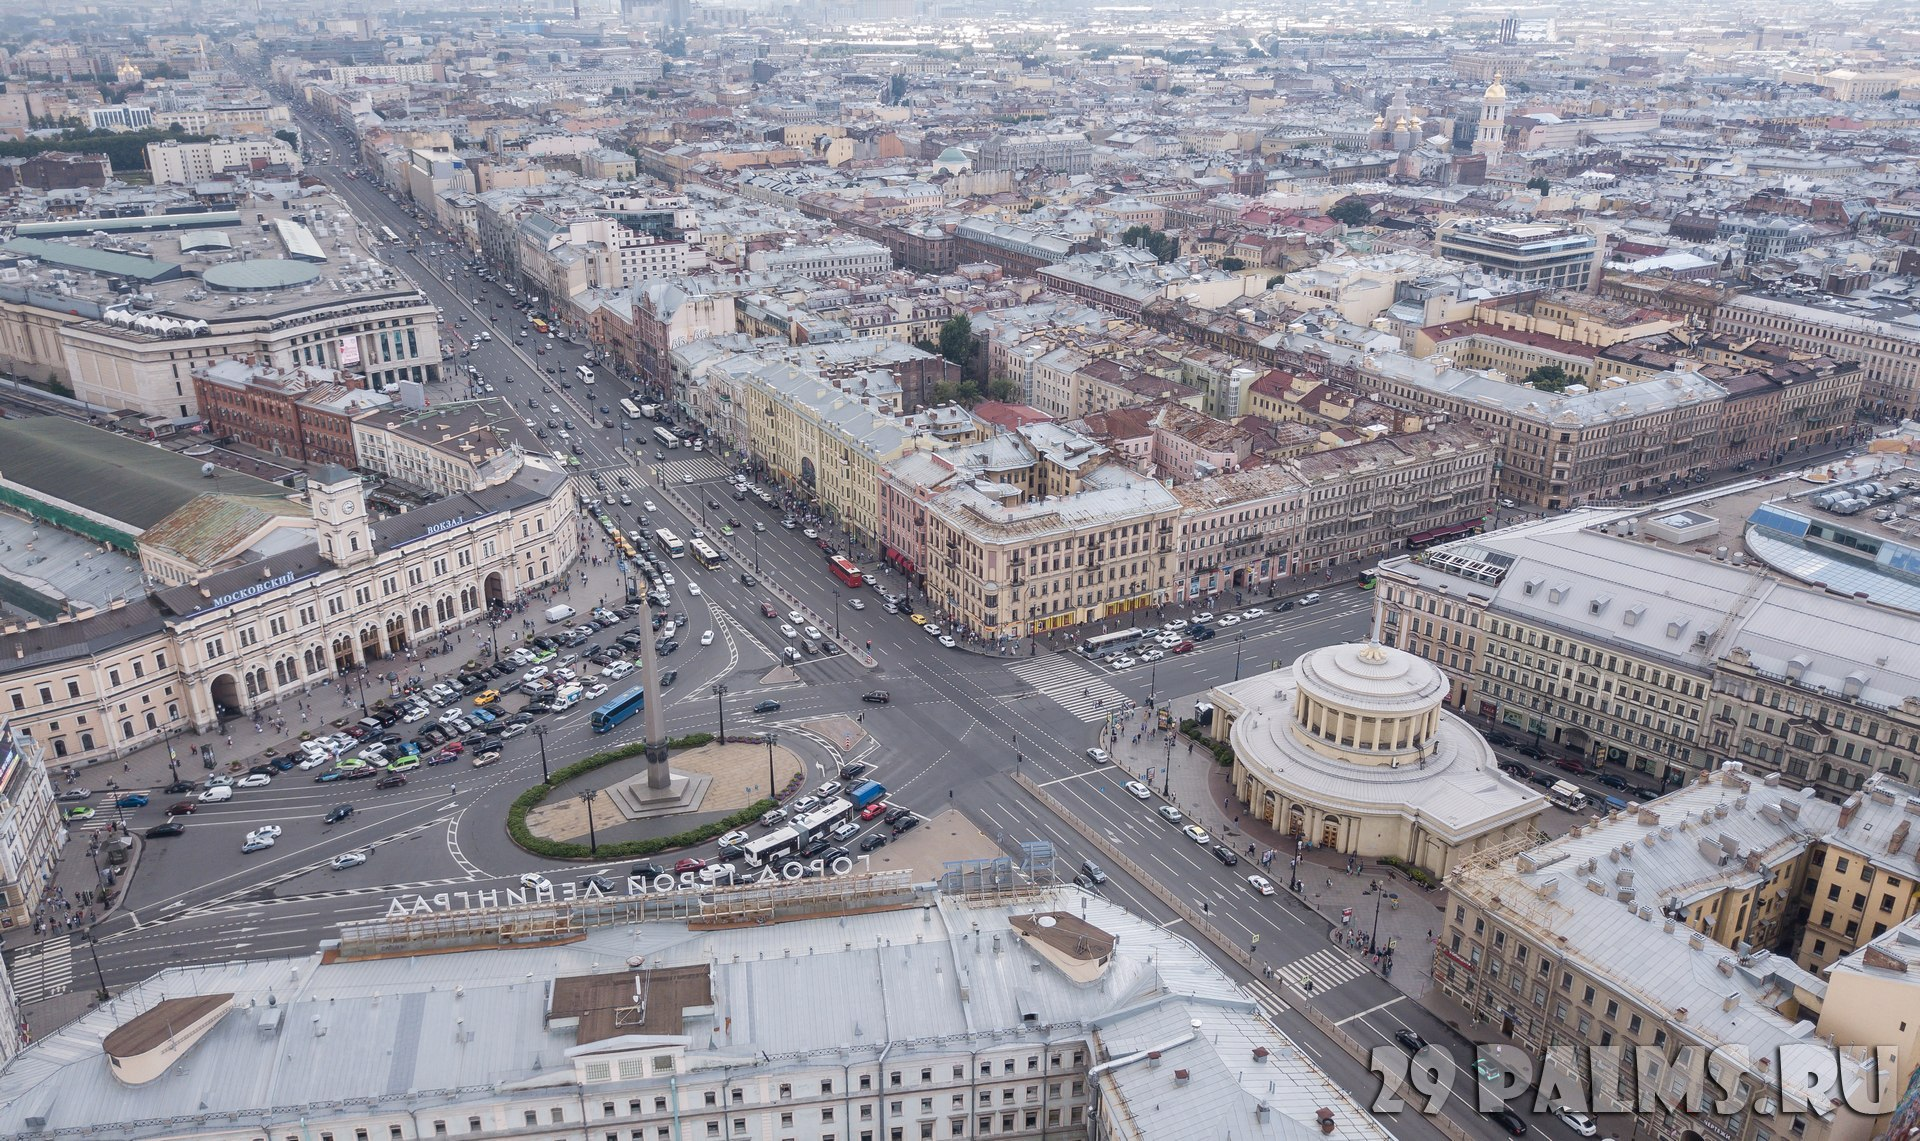 Россия. Санкт-Петербург. Площадь Восстания. Aerial view of Vosstaniya Square in St.Petersburg, Russia. Фото a_medvedkov - Depositphotos